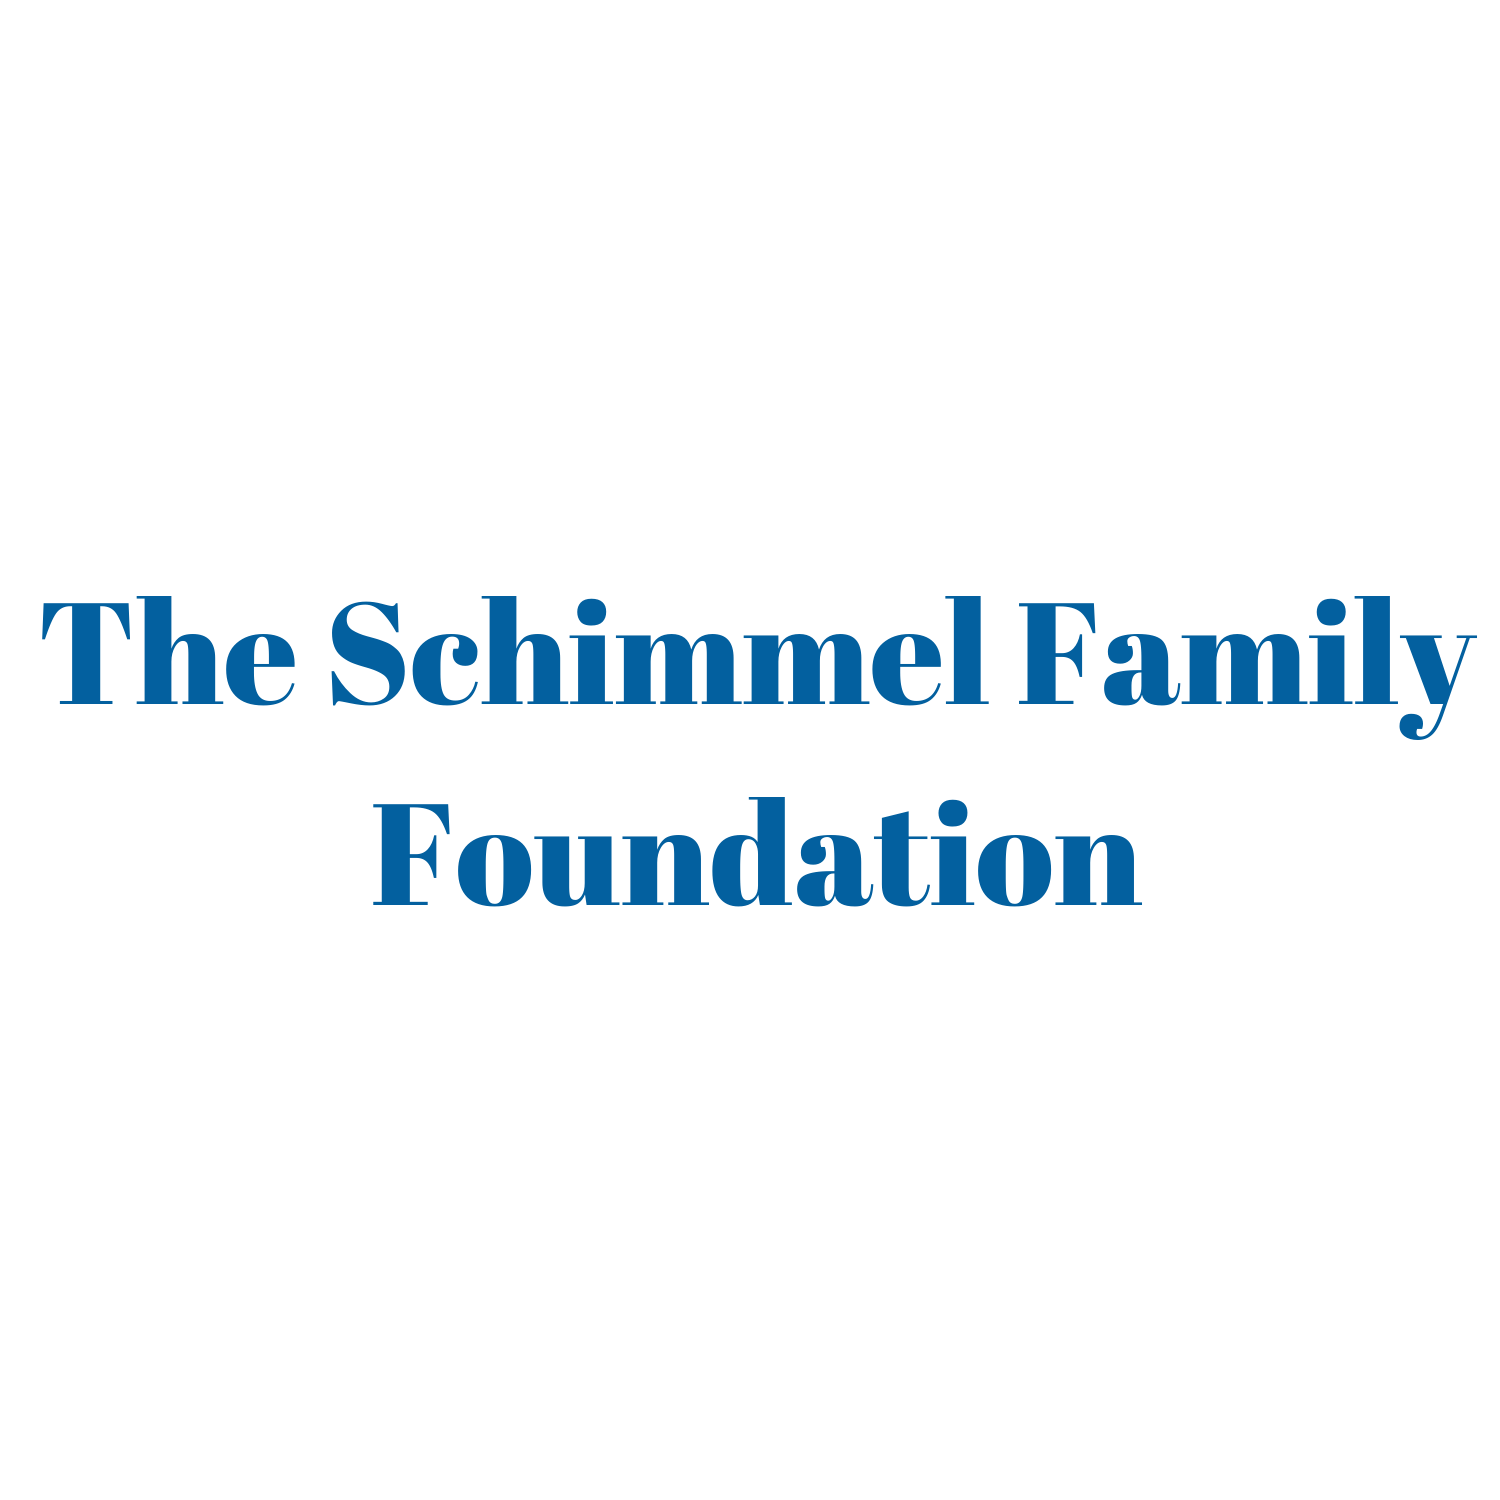 The Schimmel Family Foundation